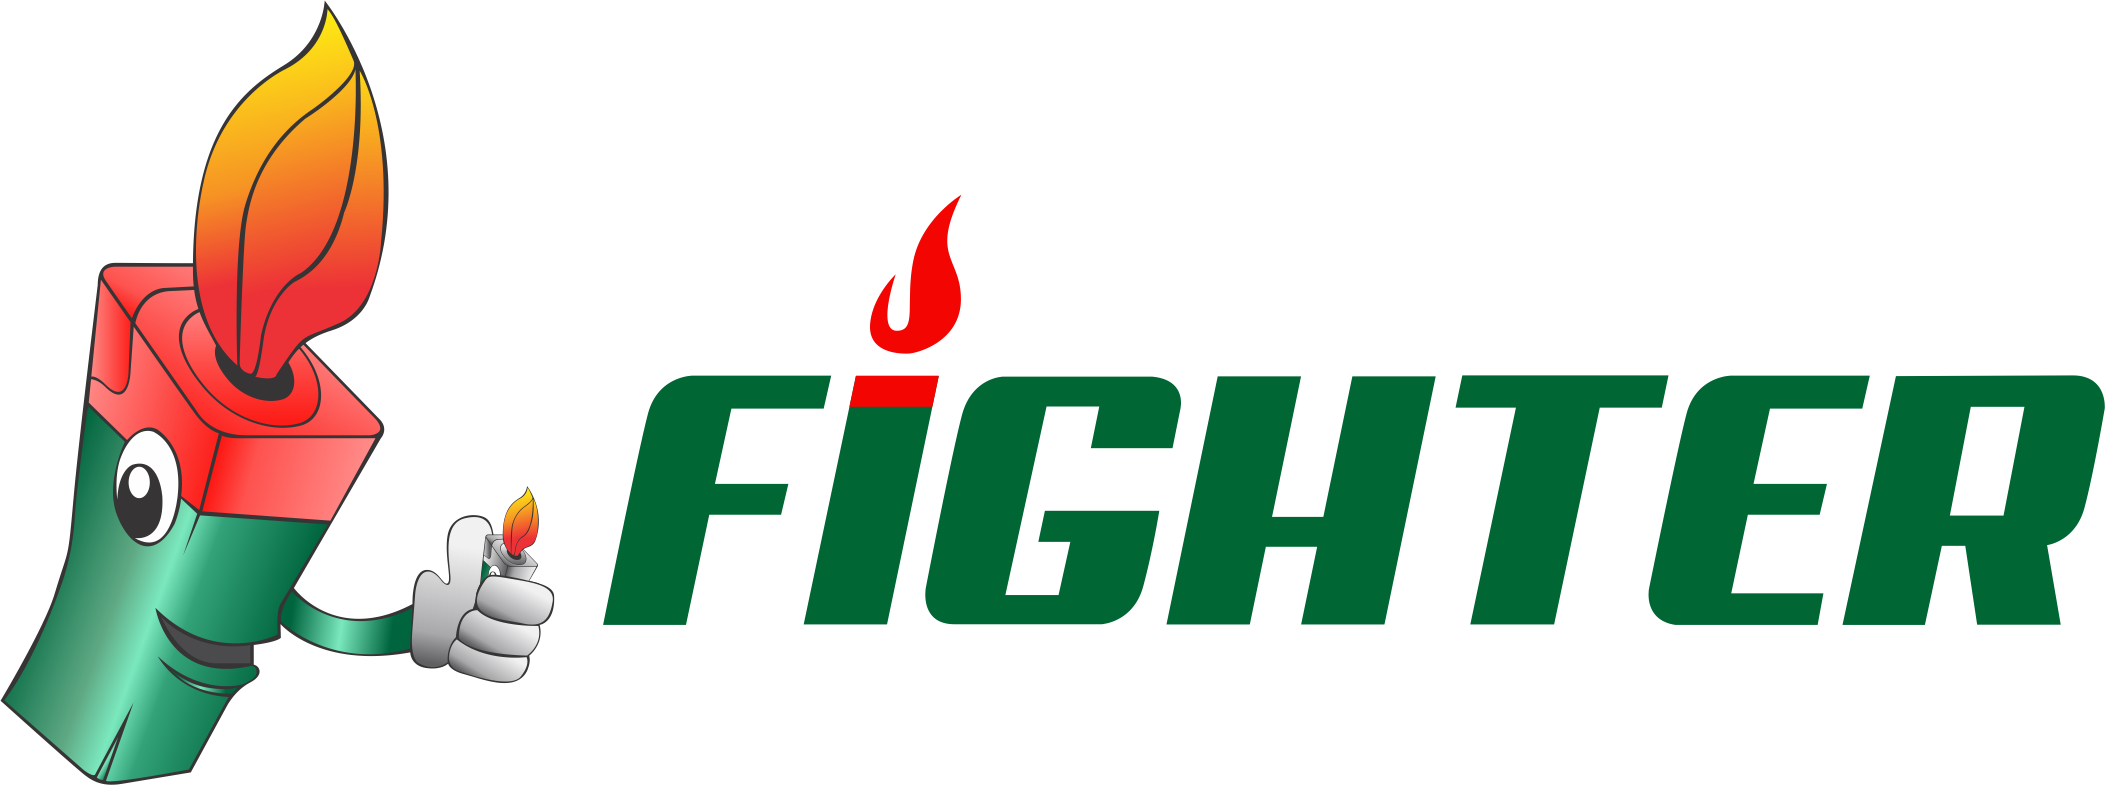 Fighter Lighter